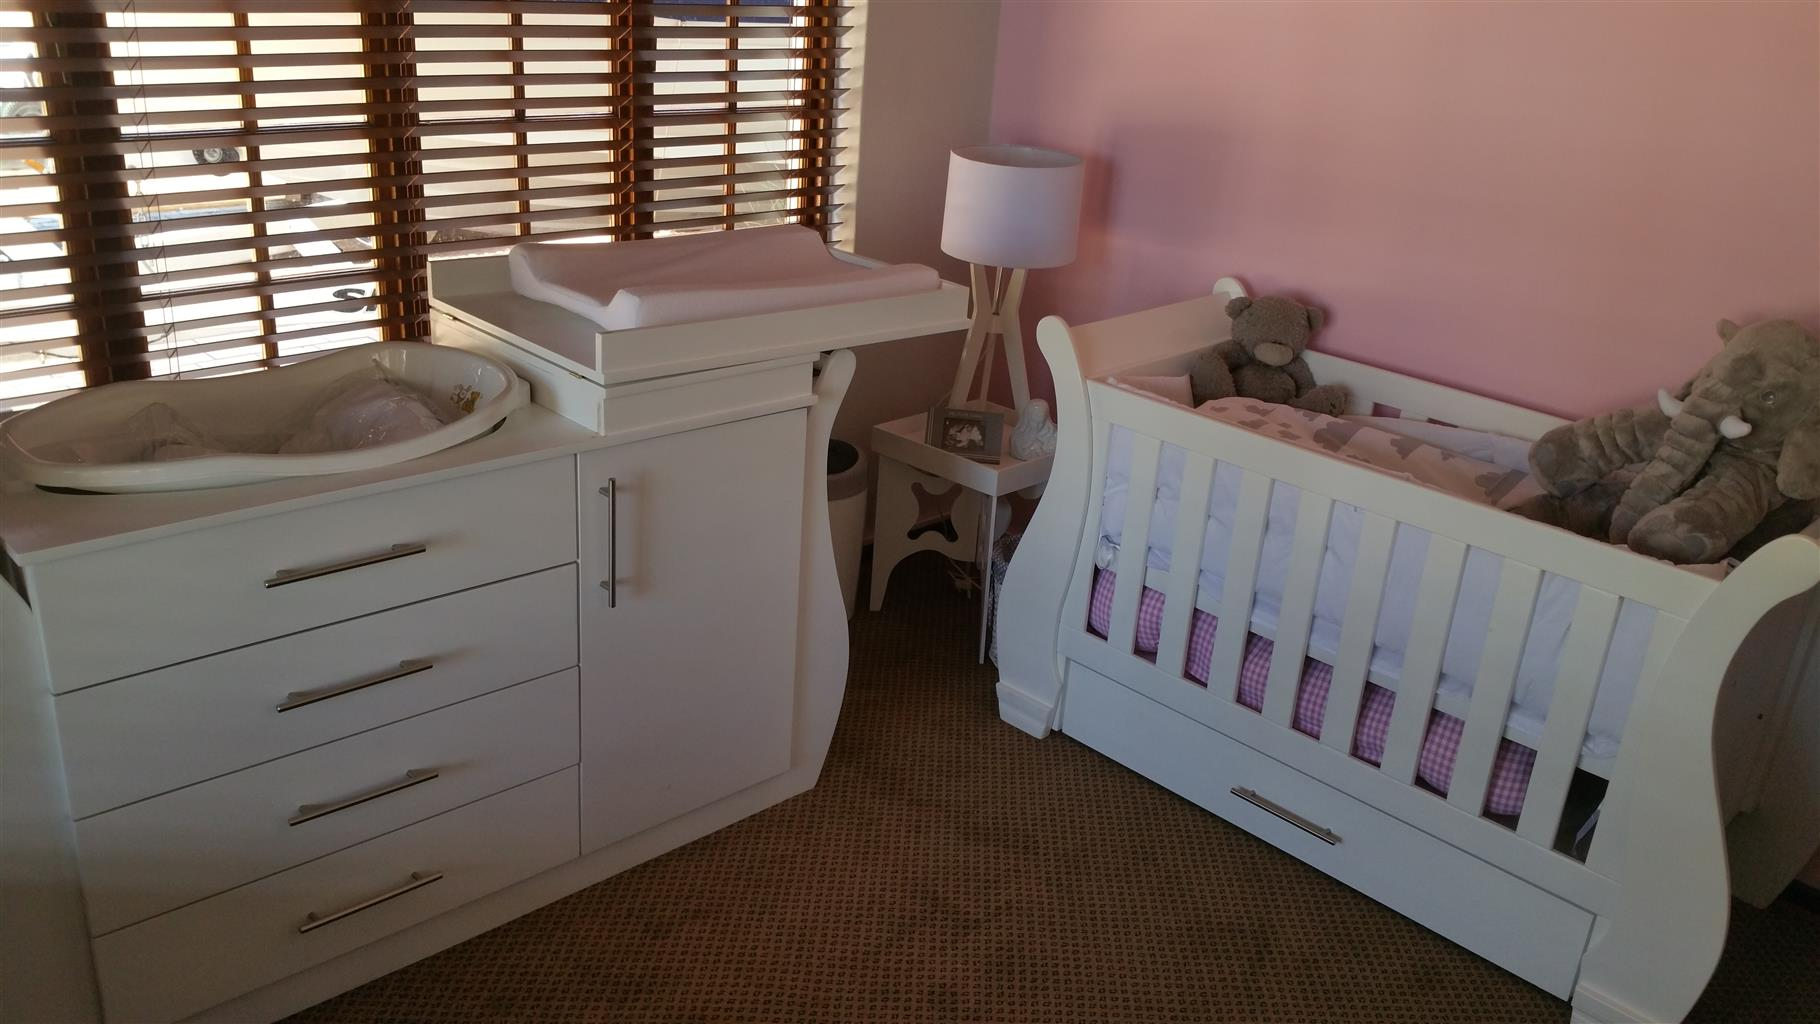 Lily Baby Cot and Compactum-R 5999,00 for sale  Drakensberg North - Durban North